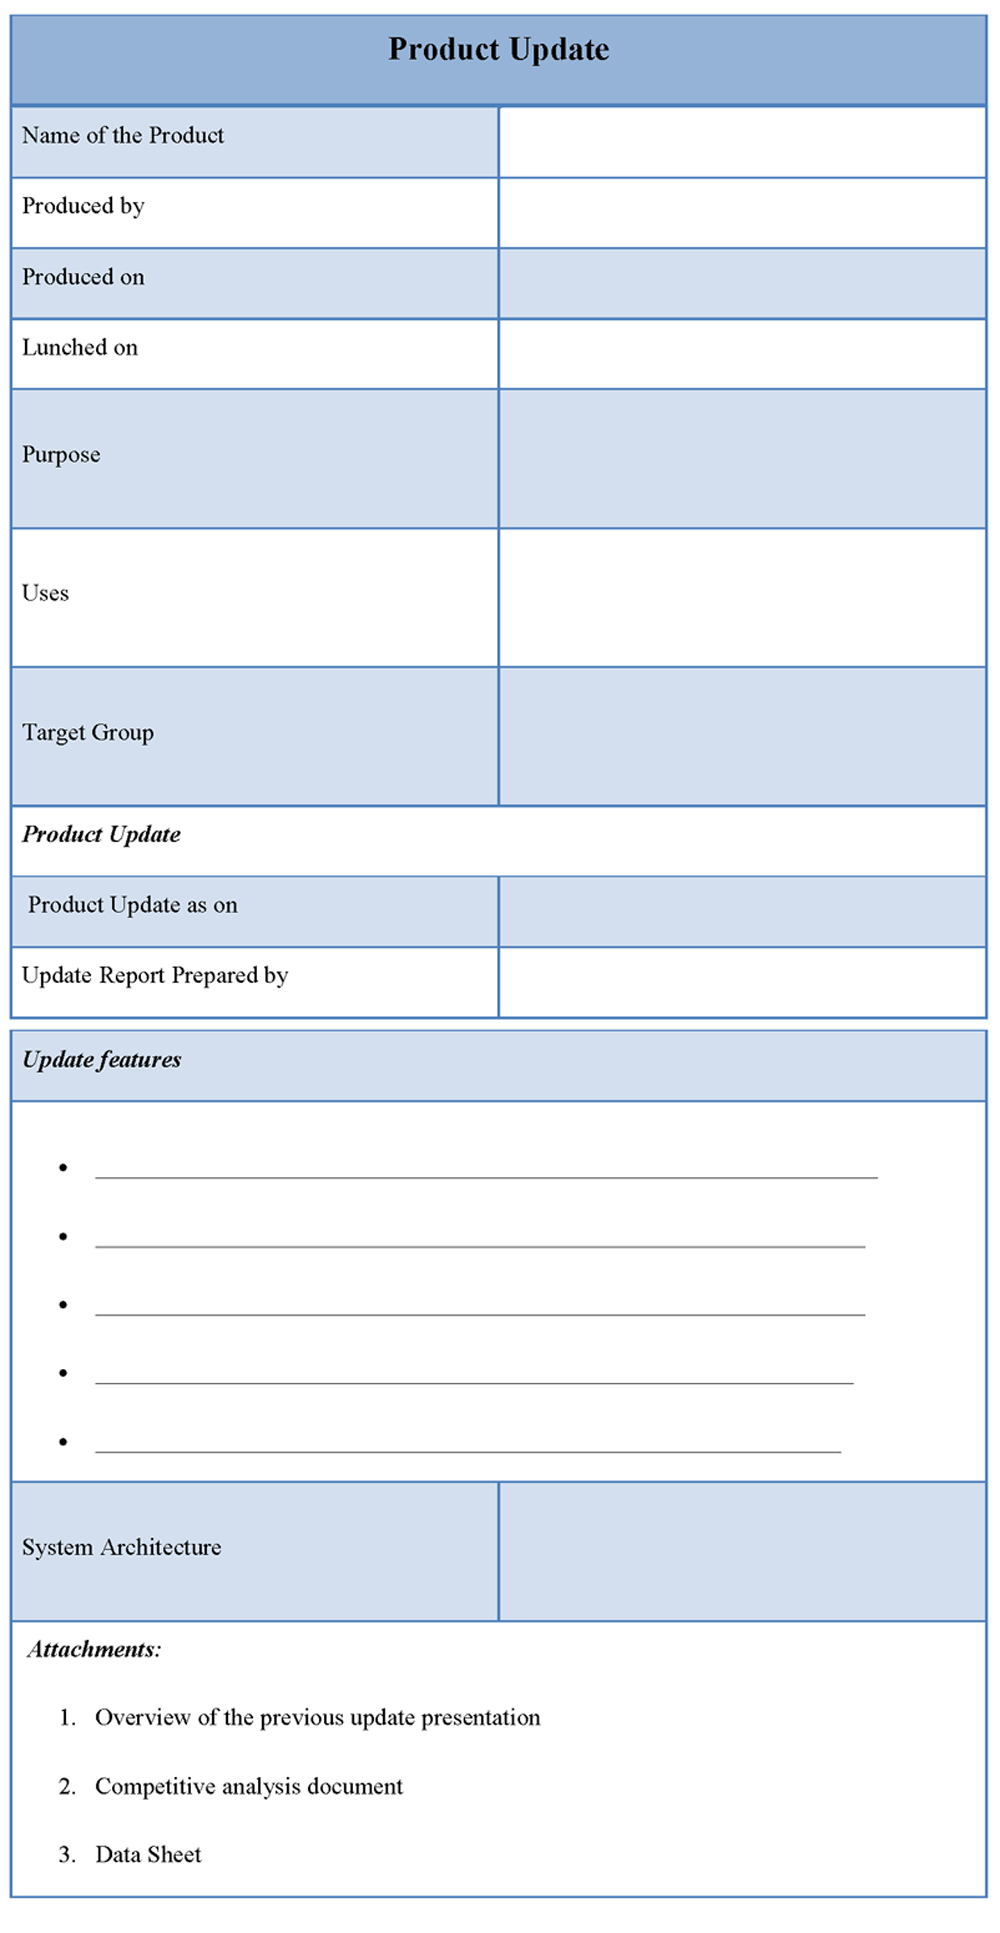 Product Update Template Editable Docs Templates, Data